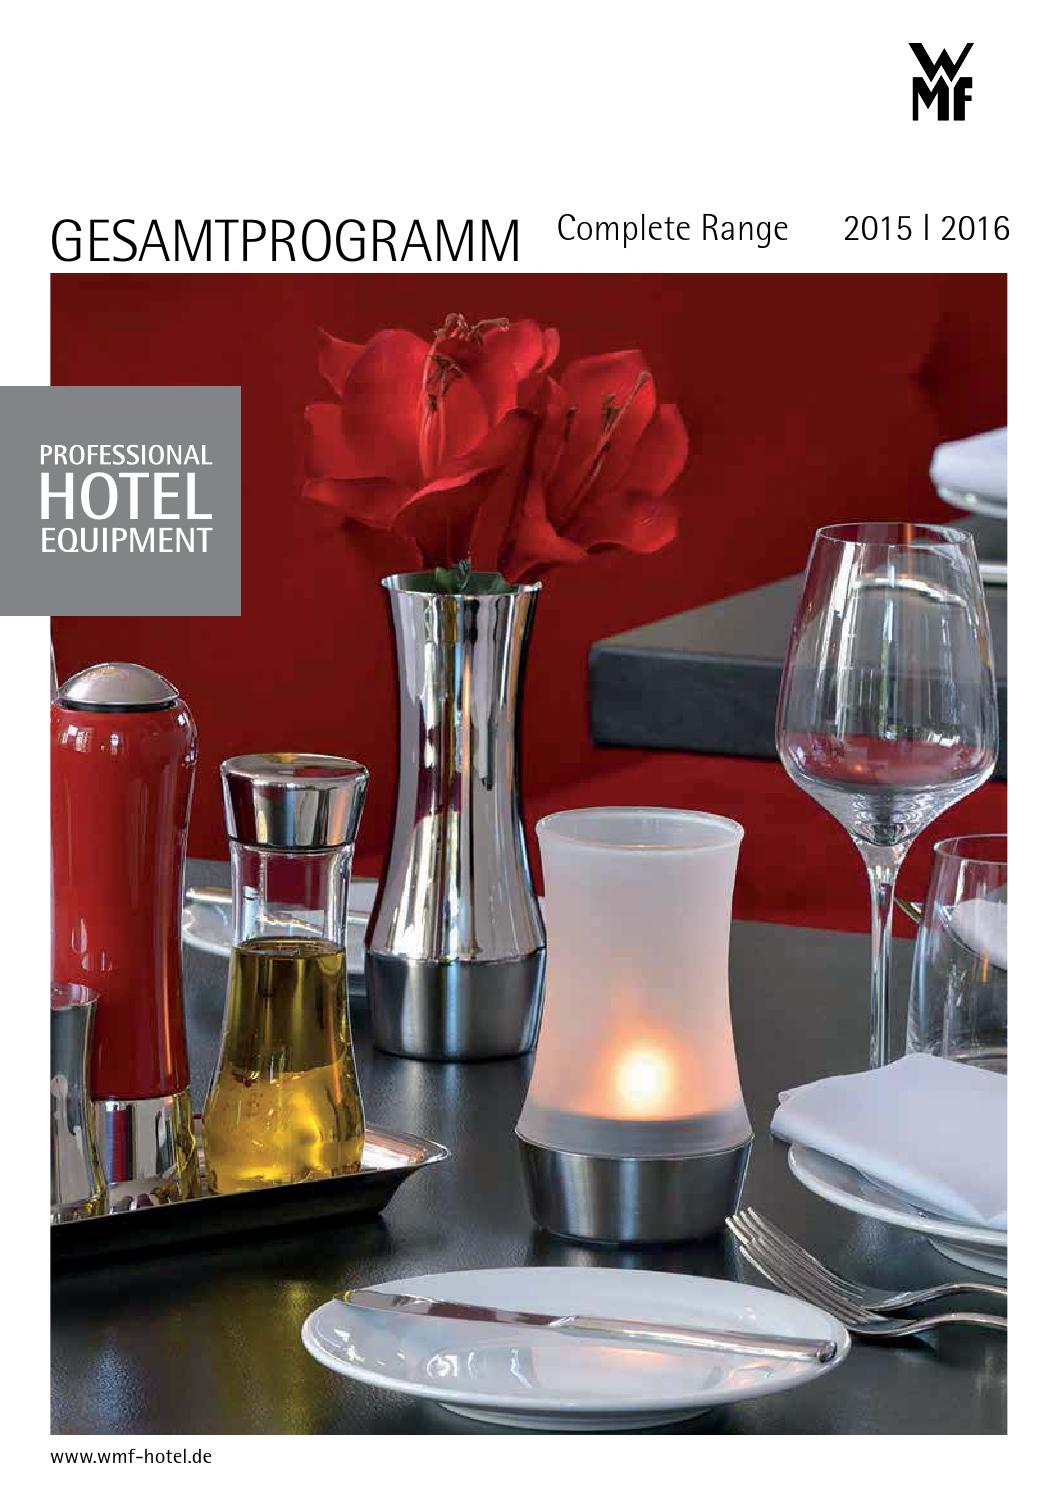 Reling Küche Wmf Wmf Catalogue 2015 2016 By Sarafidisgroup Sarafidisgroup Issuu